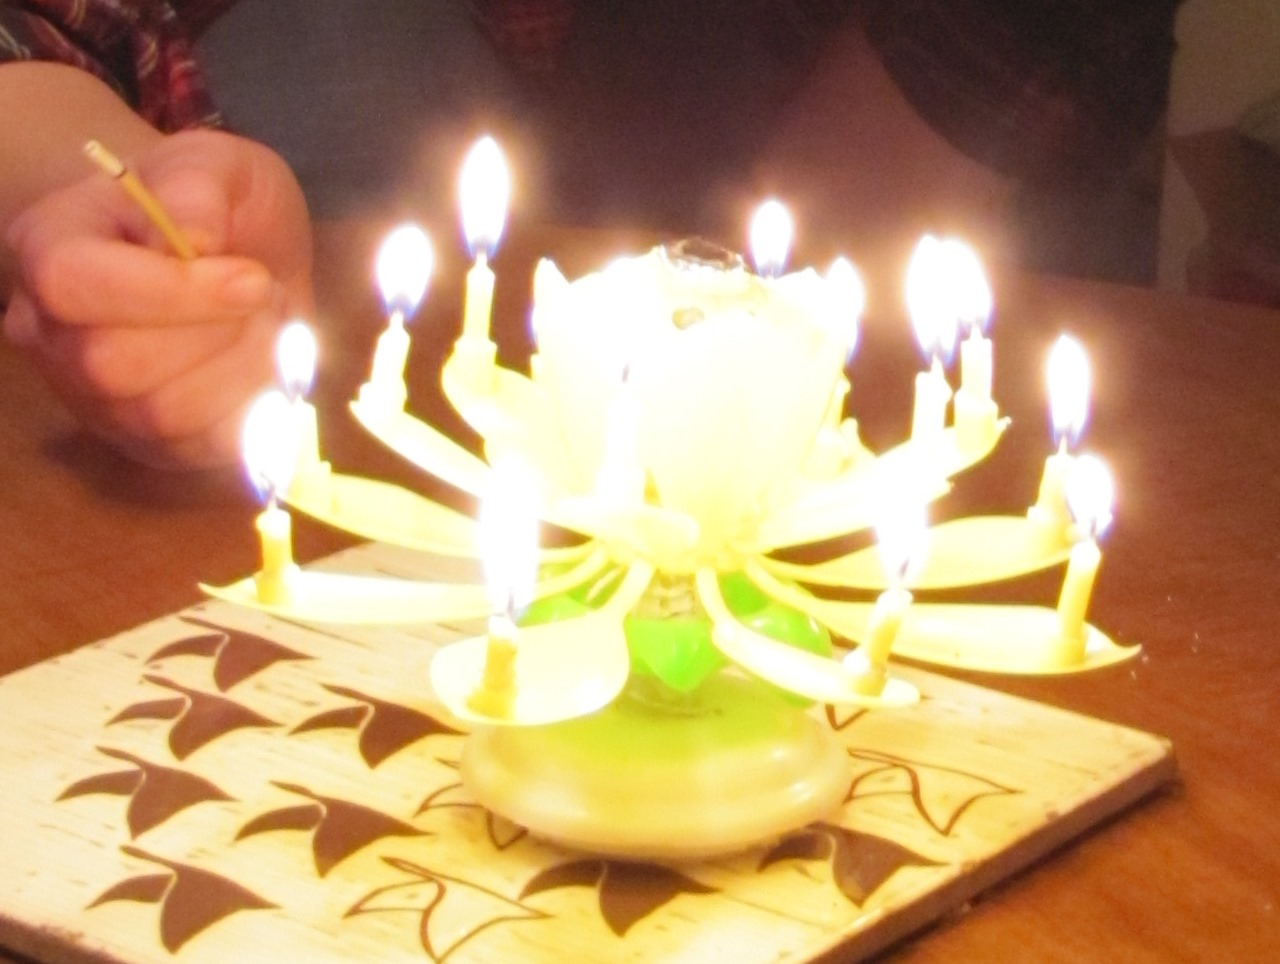 Why Do We Put Candles On Birthday Cake